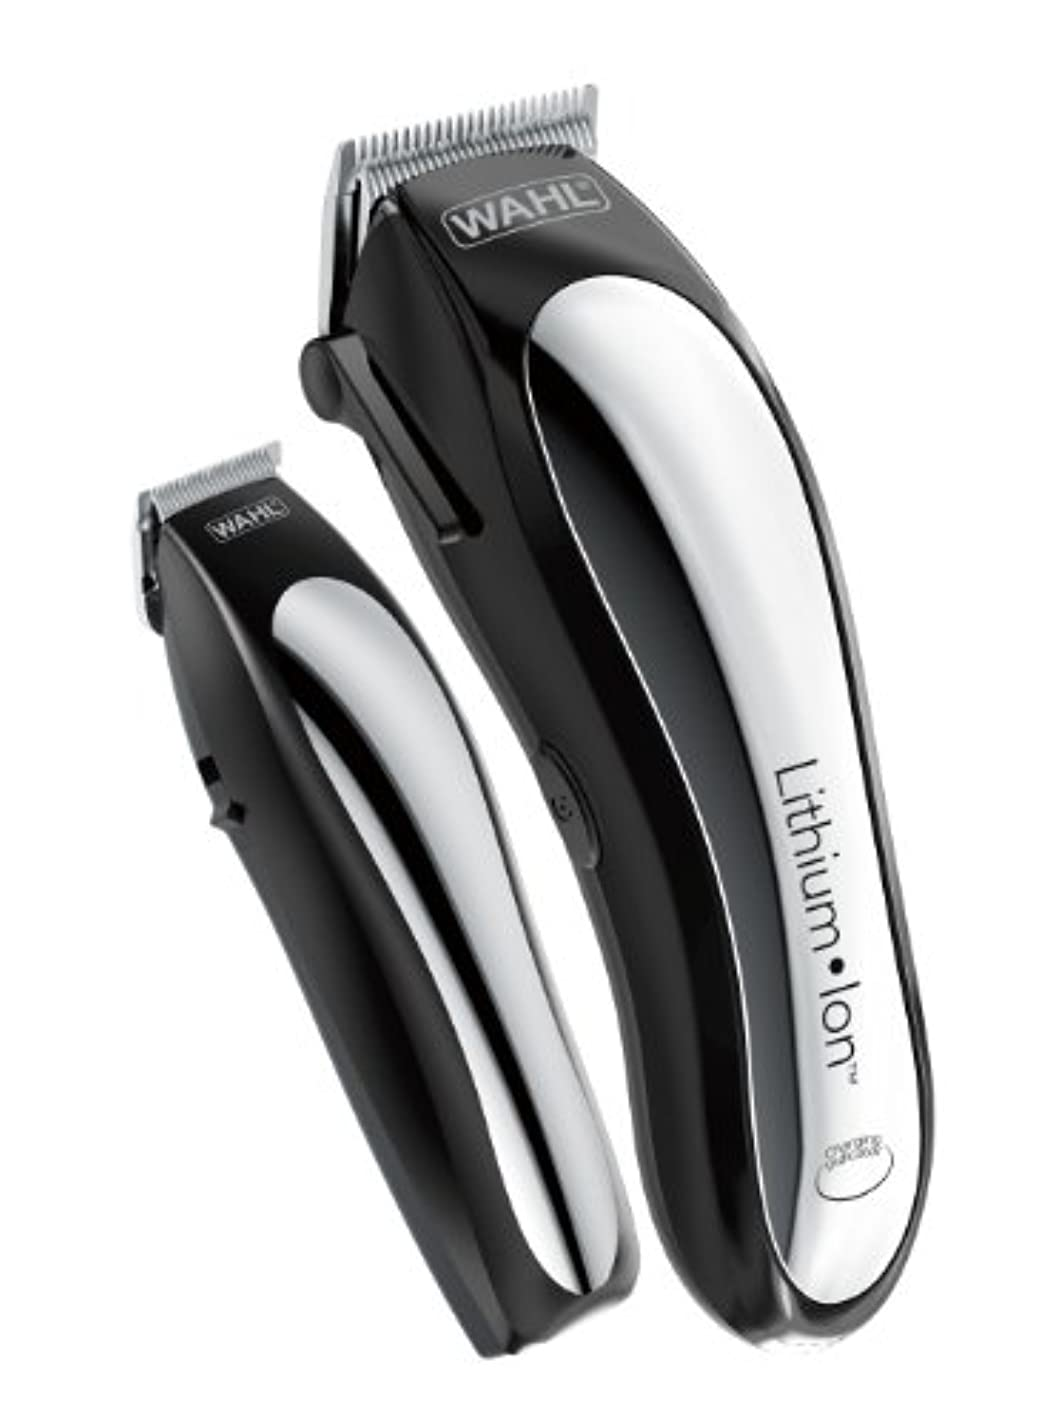 願う社会学ものWahl Clipper Lithium Ion Cordless Rechargeable Hair Clippers and Trimmers for men,Hair Cutting Kit with 10 Guide...